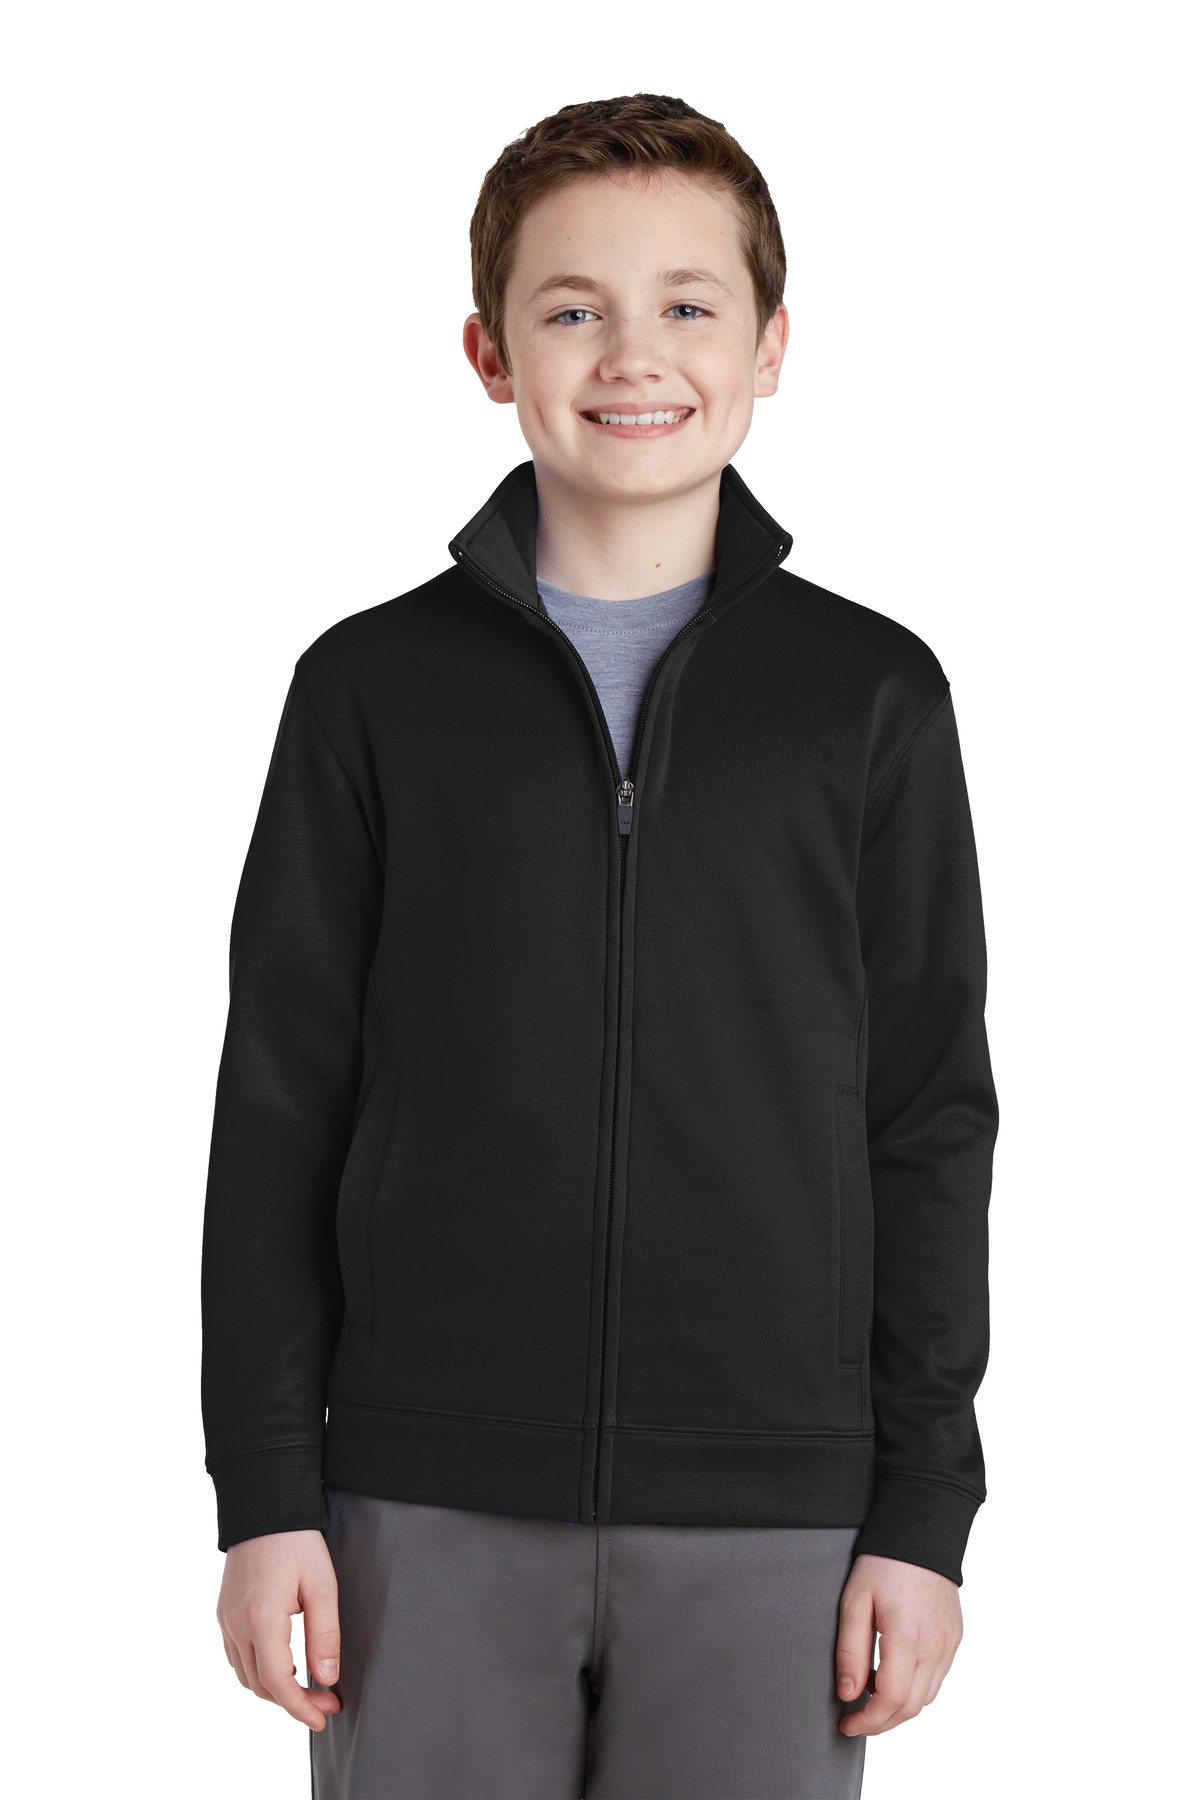 Sport-Tek  Youth Sport-Wick  YST241 - Fleece Full-Zip Jacket